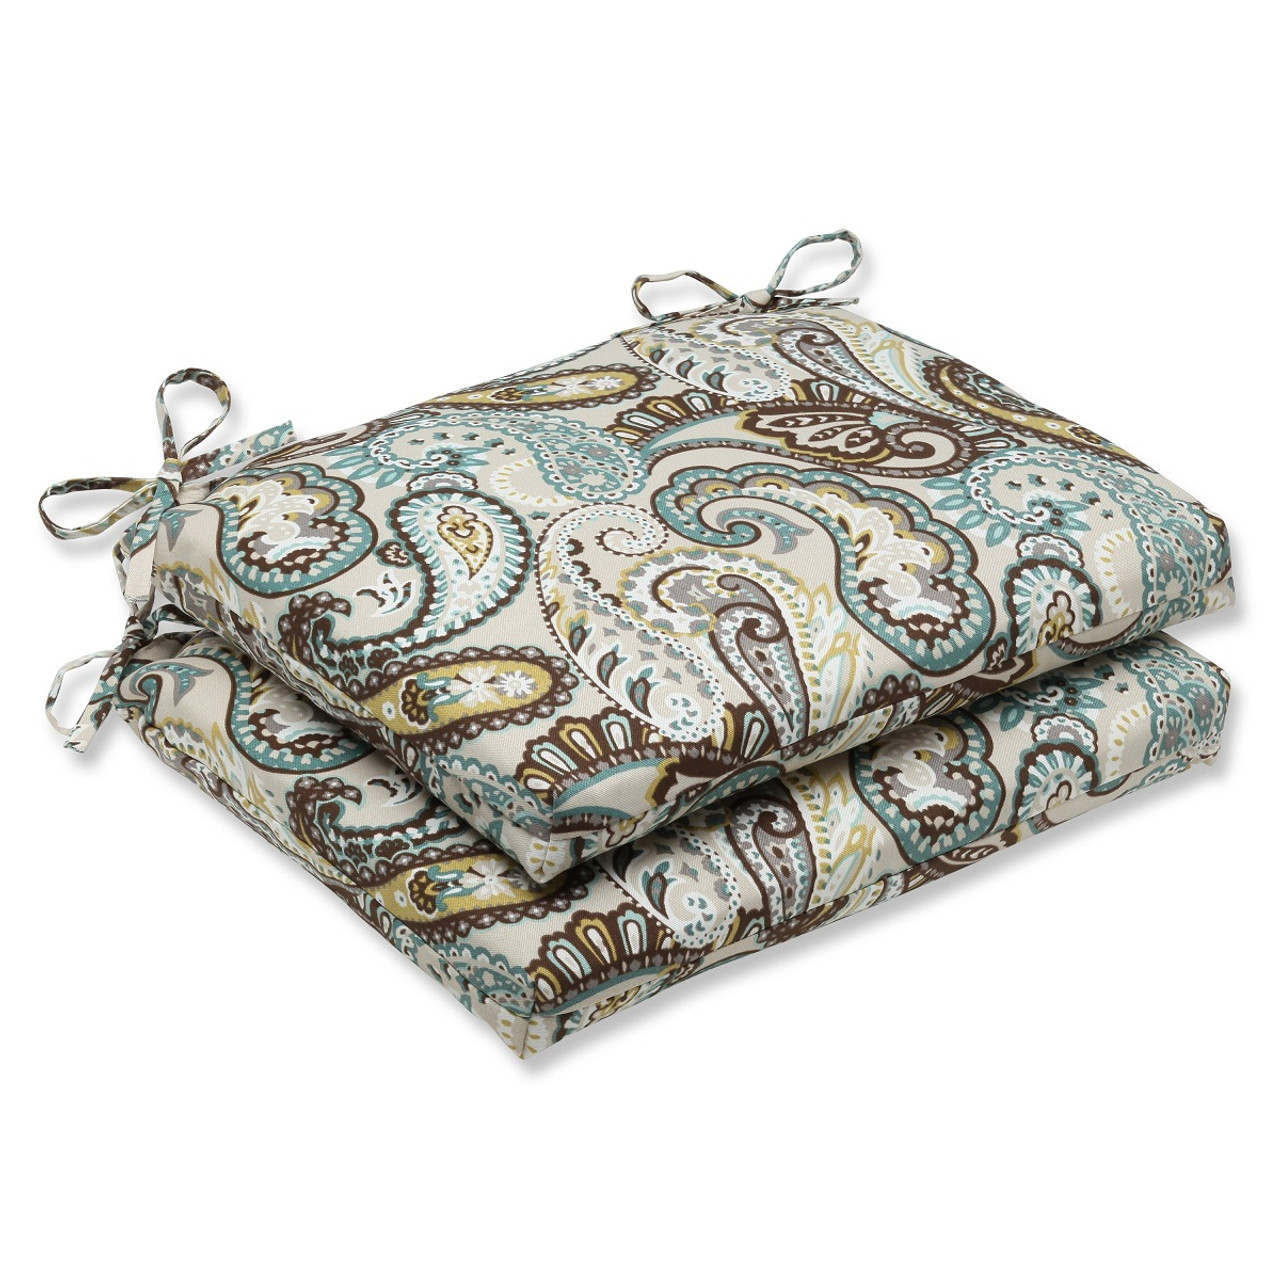 Outdoor Patio Chair Cushions.Set Of 2 Paisley Giardino Light Blue And Brown Outdoor Patio Chair Cushions 18 5 31351142